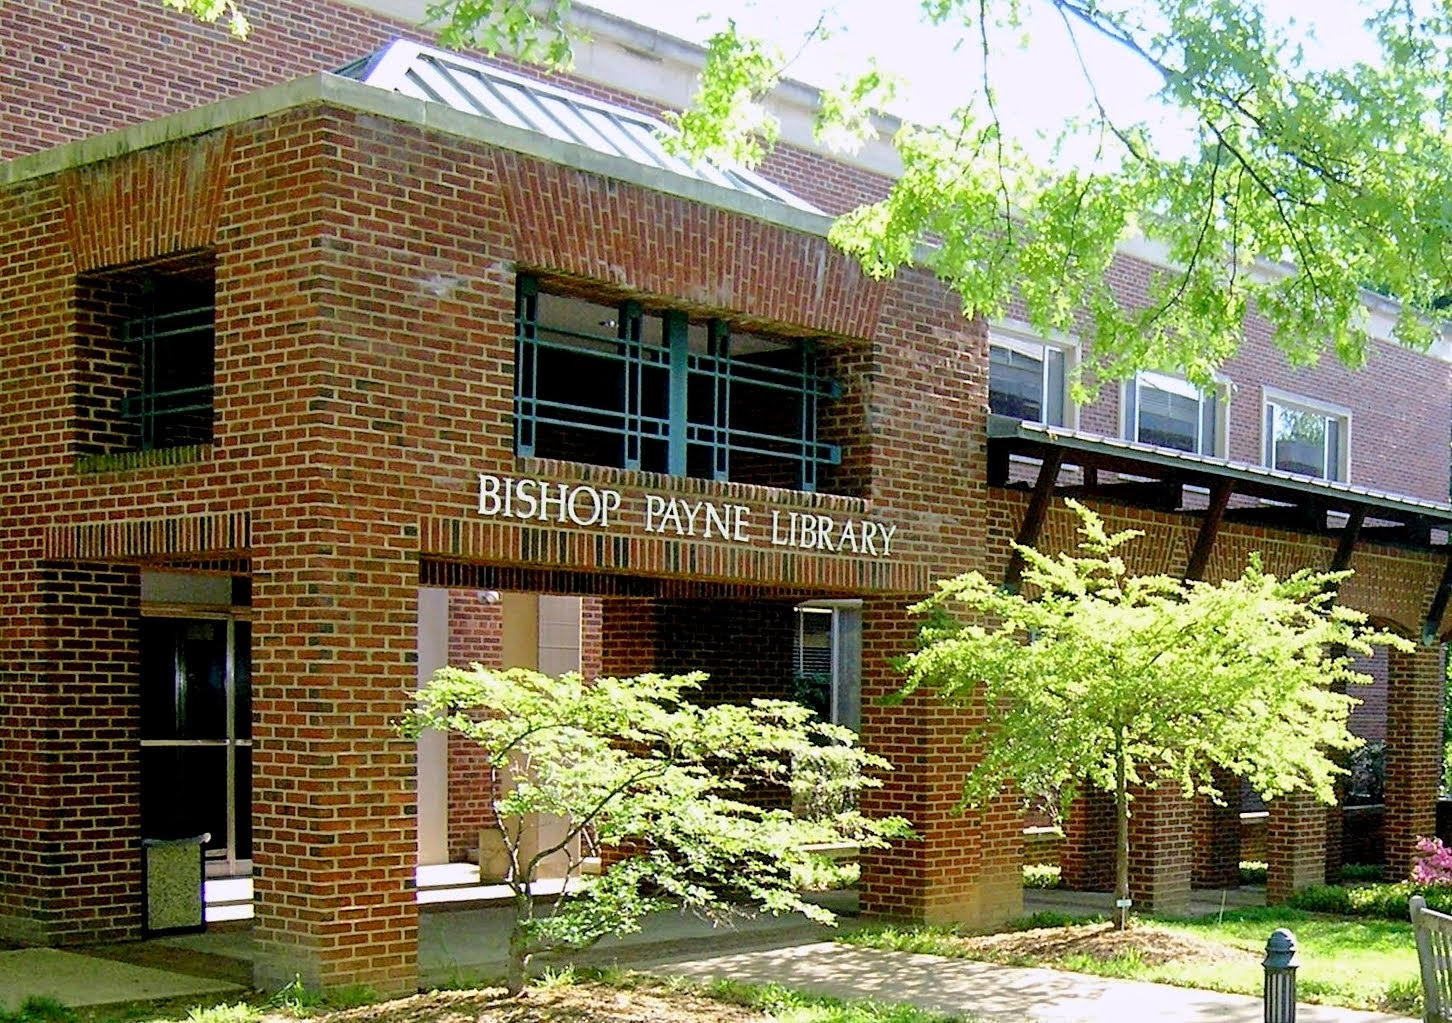 Bishop Payne Library